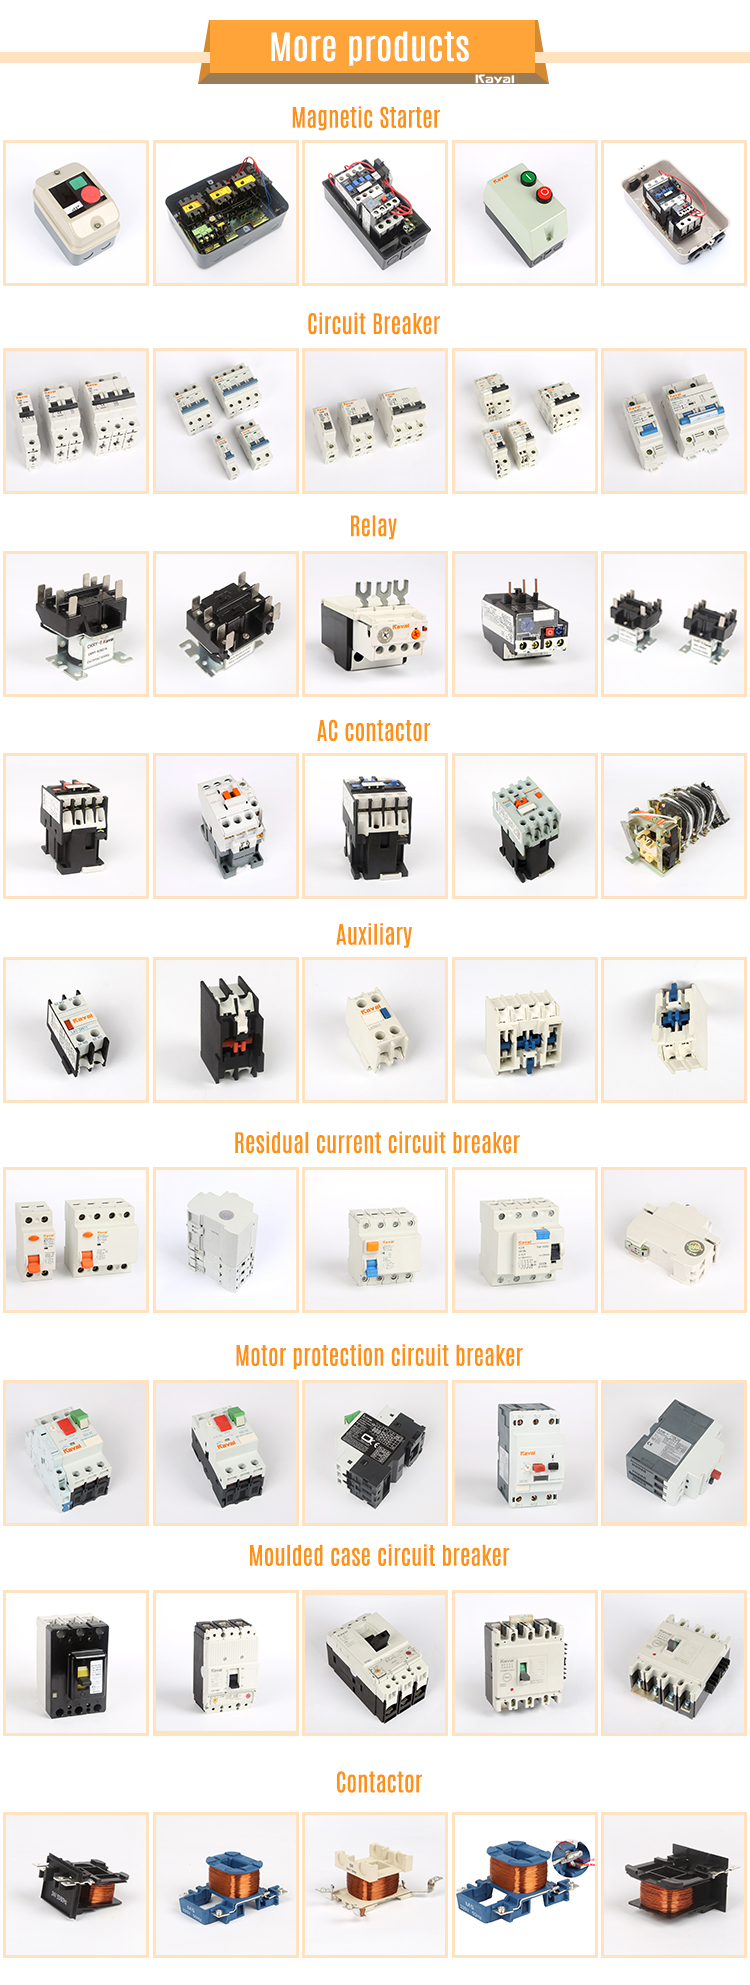 Relay Contactor Circuit Breaker Mini Dz47le63 China Electronic Relays Contactors Breakers Pc Mount Nte Electronics Magnetic Electrical Starter Ac Dc Type Buy